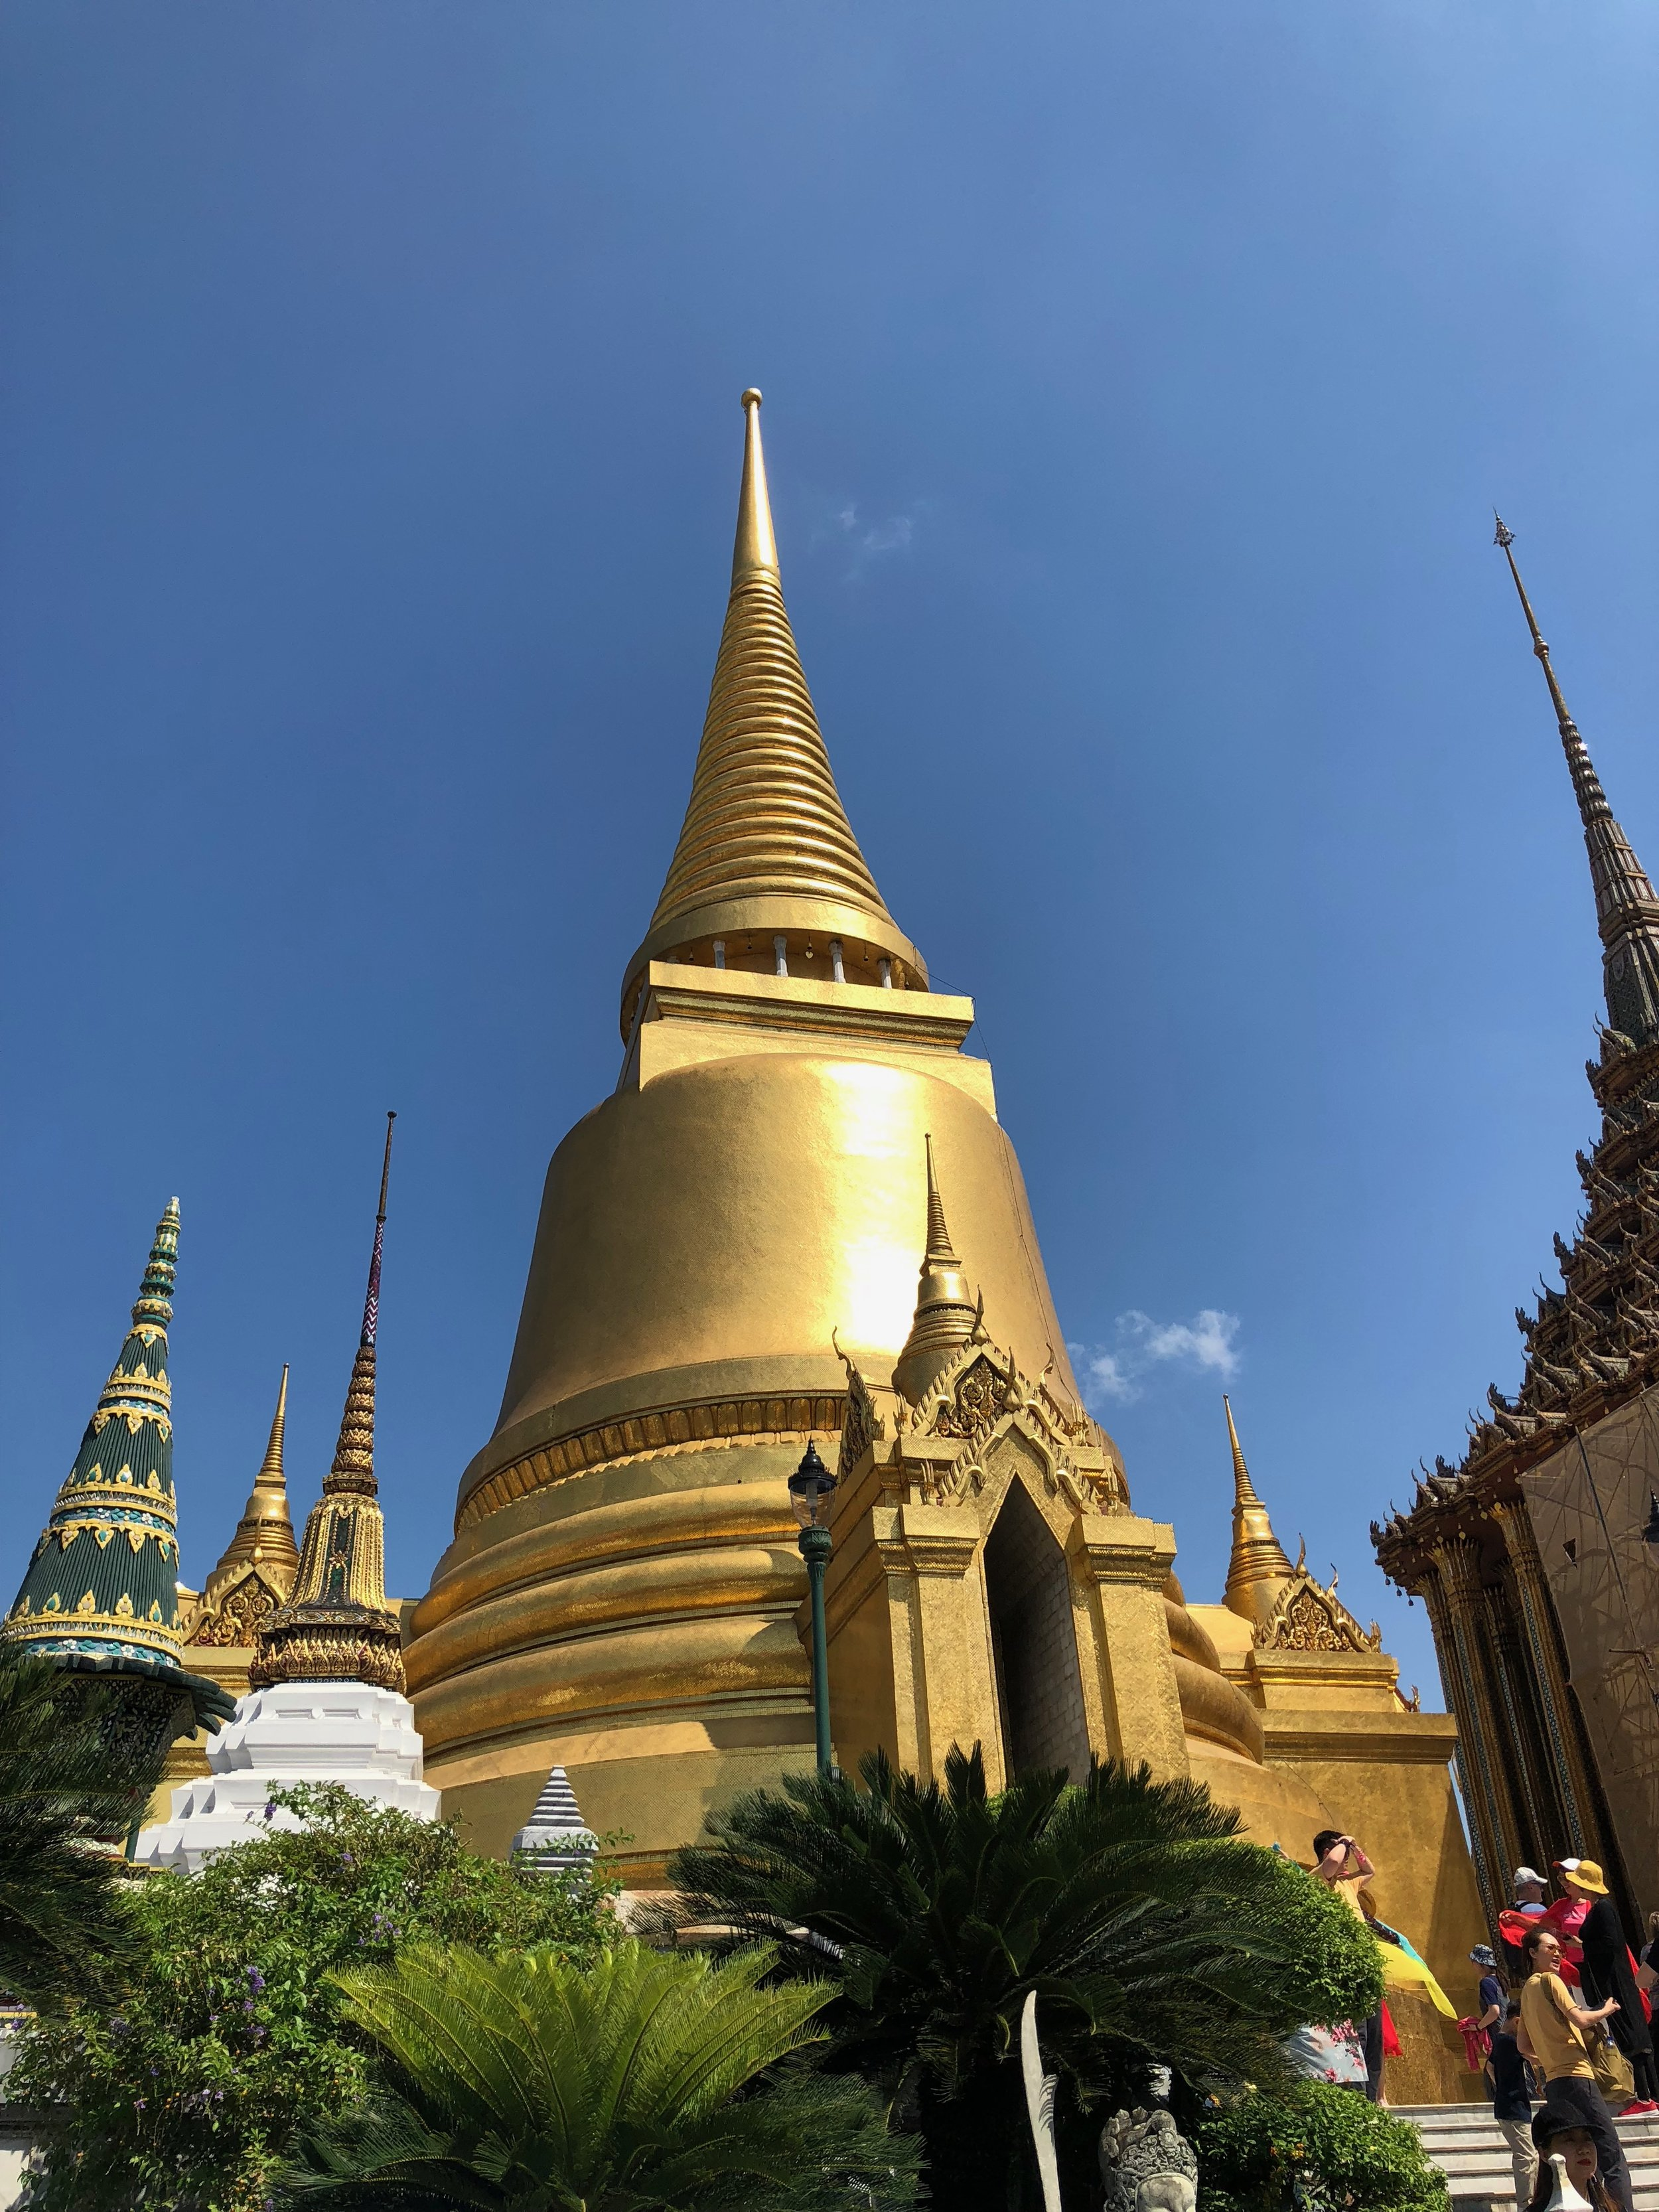 This golden spire was one of the highlights of my exploration of the Grand Palace.